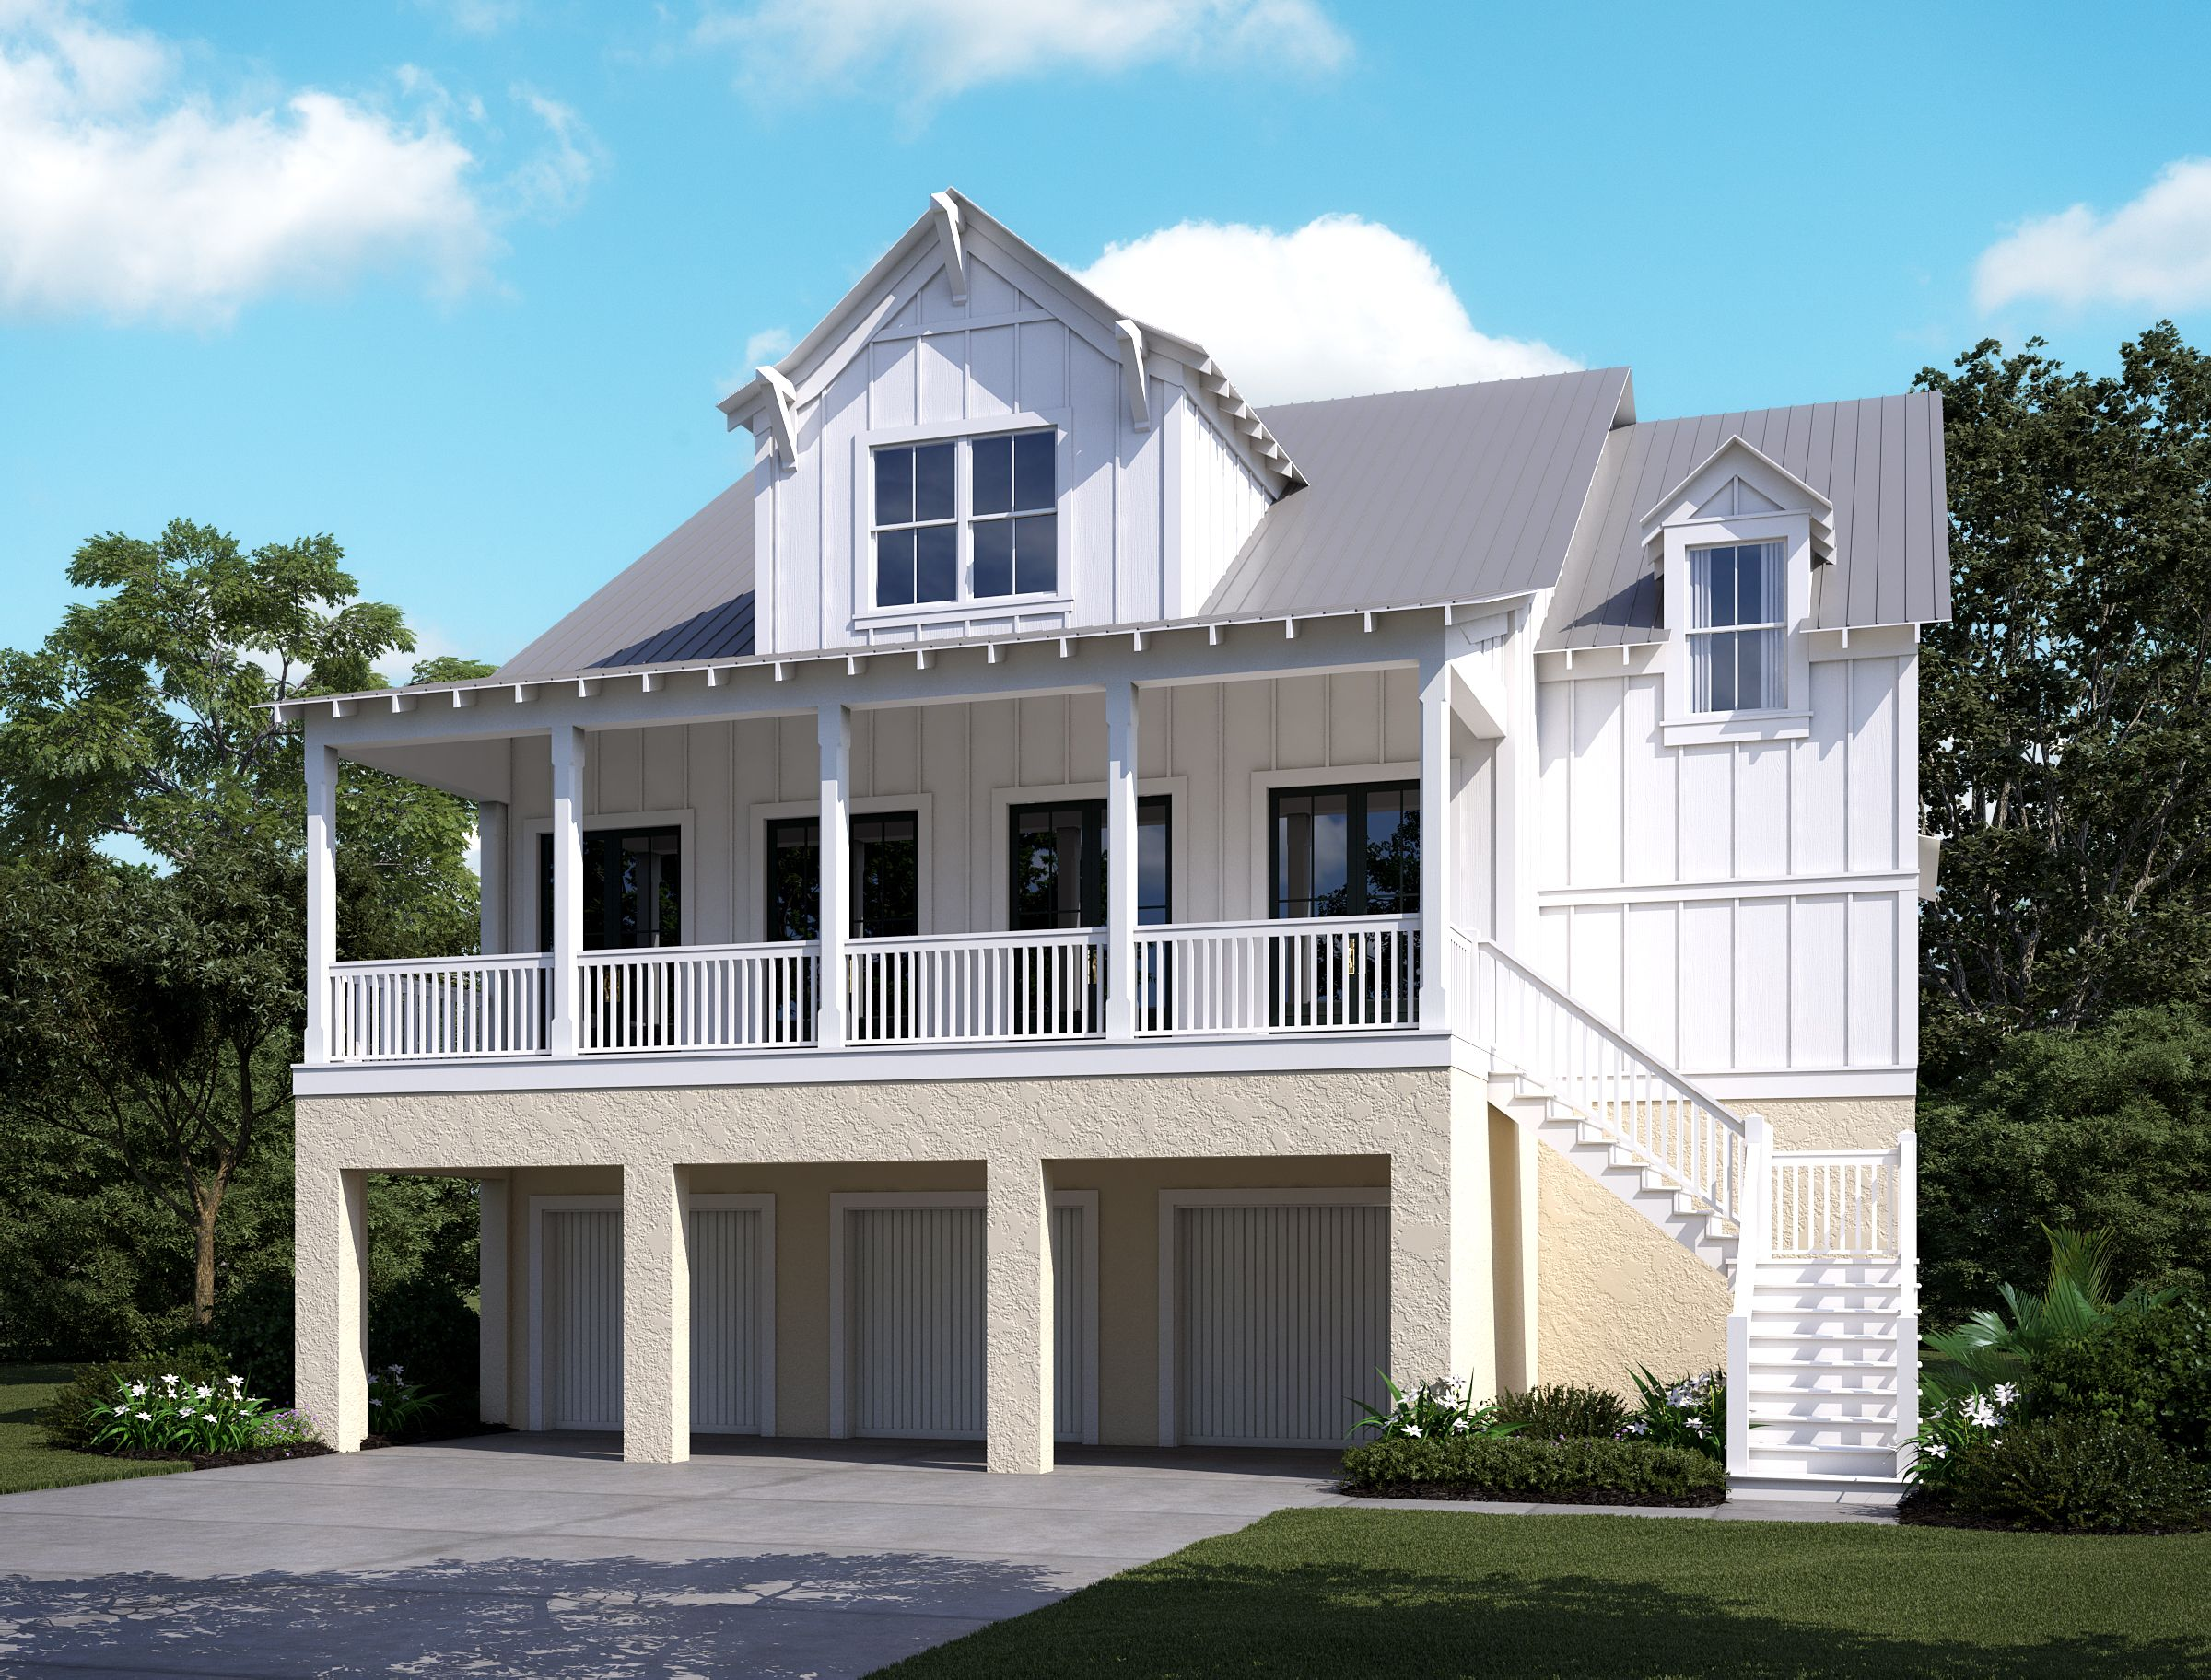 Single Family for Sale at Stratton By The Sound - Palms 1400 Stratton Place Mount Pleasant, South Carolina 29466 United States